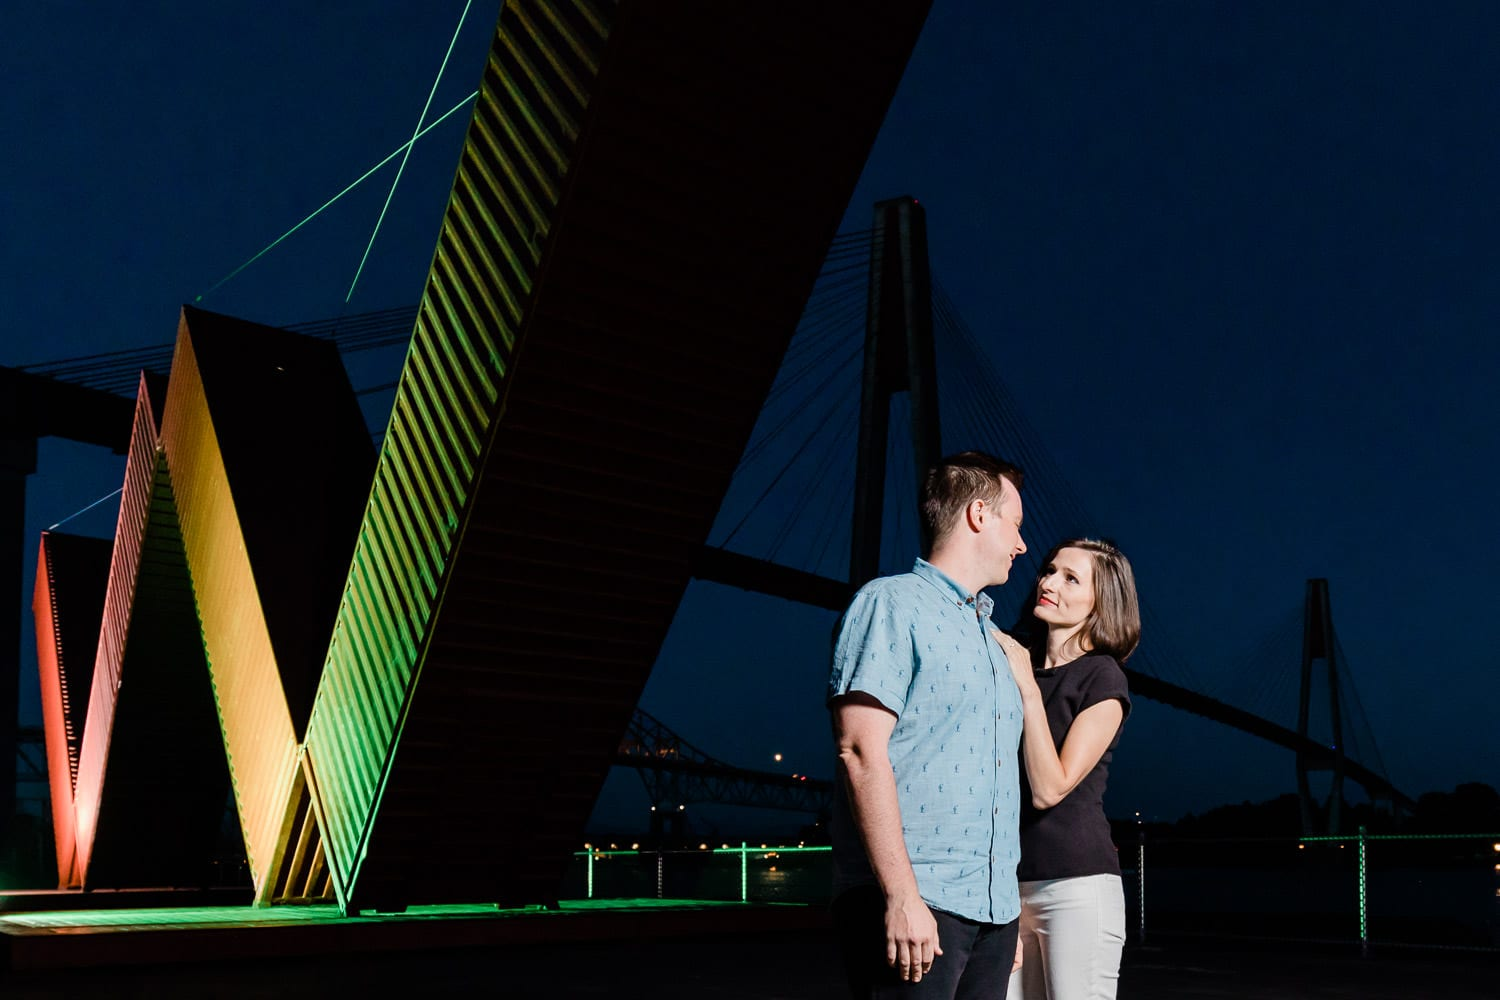 Engagement photo at Westminster Pier Park | Vancouver Fine Art Wedding Photographer